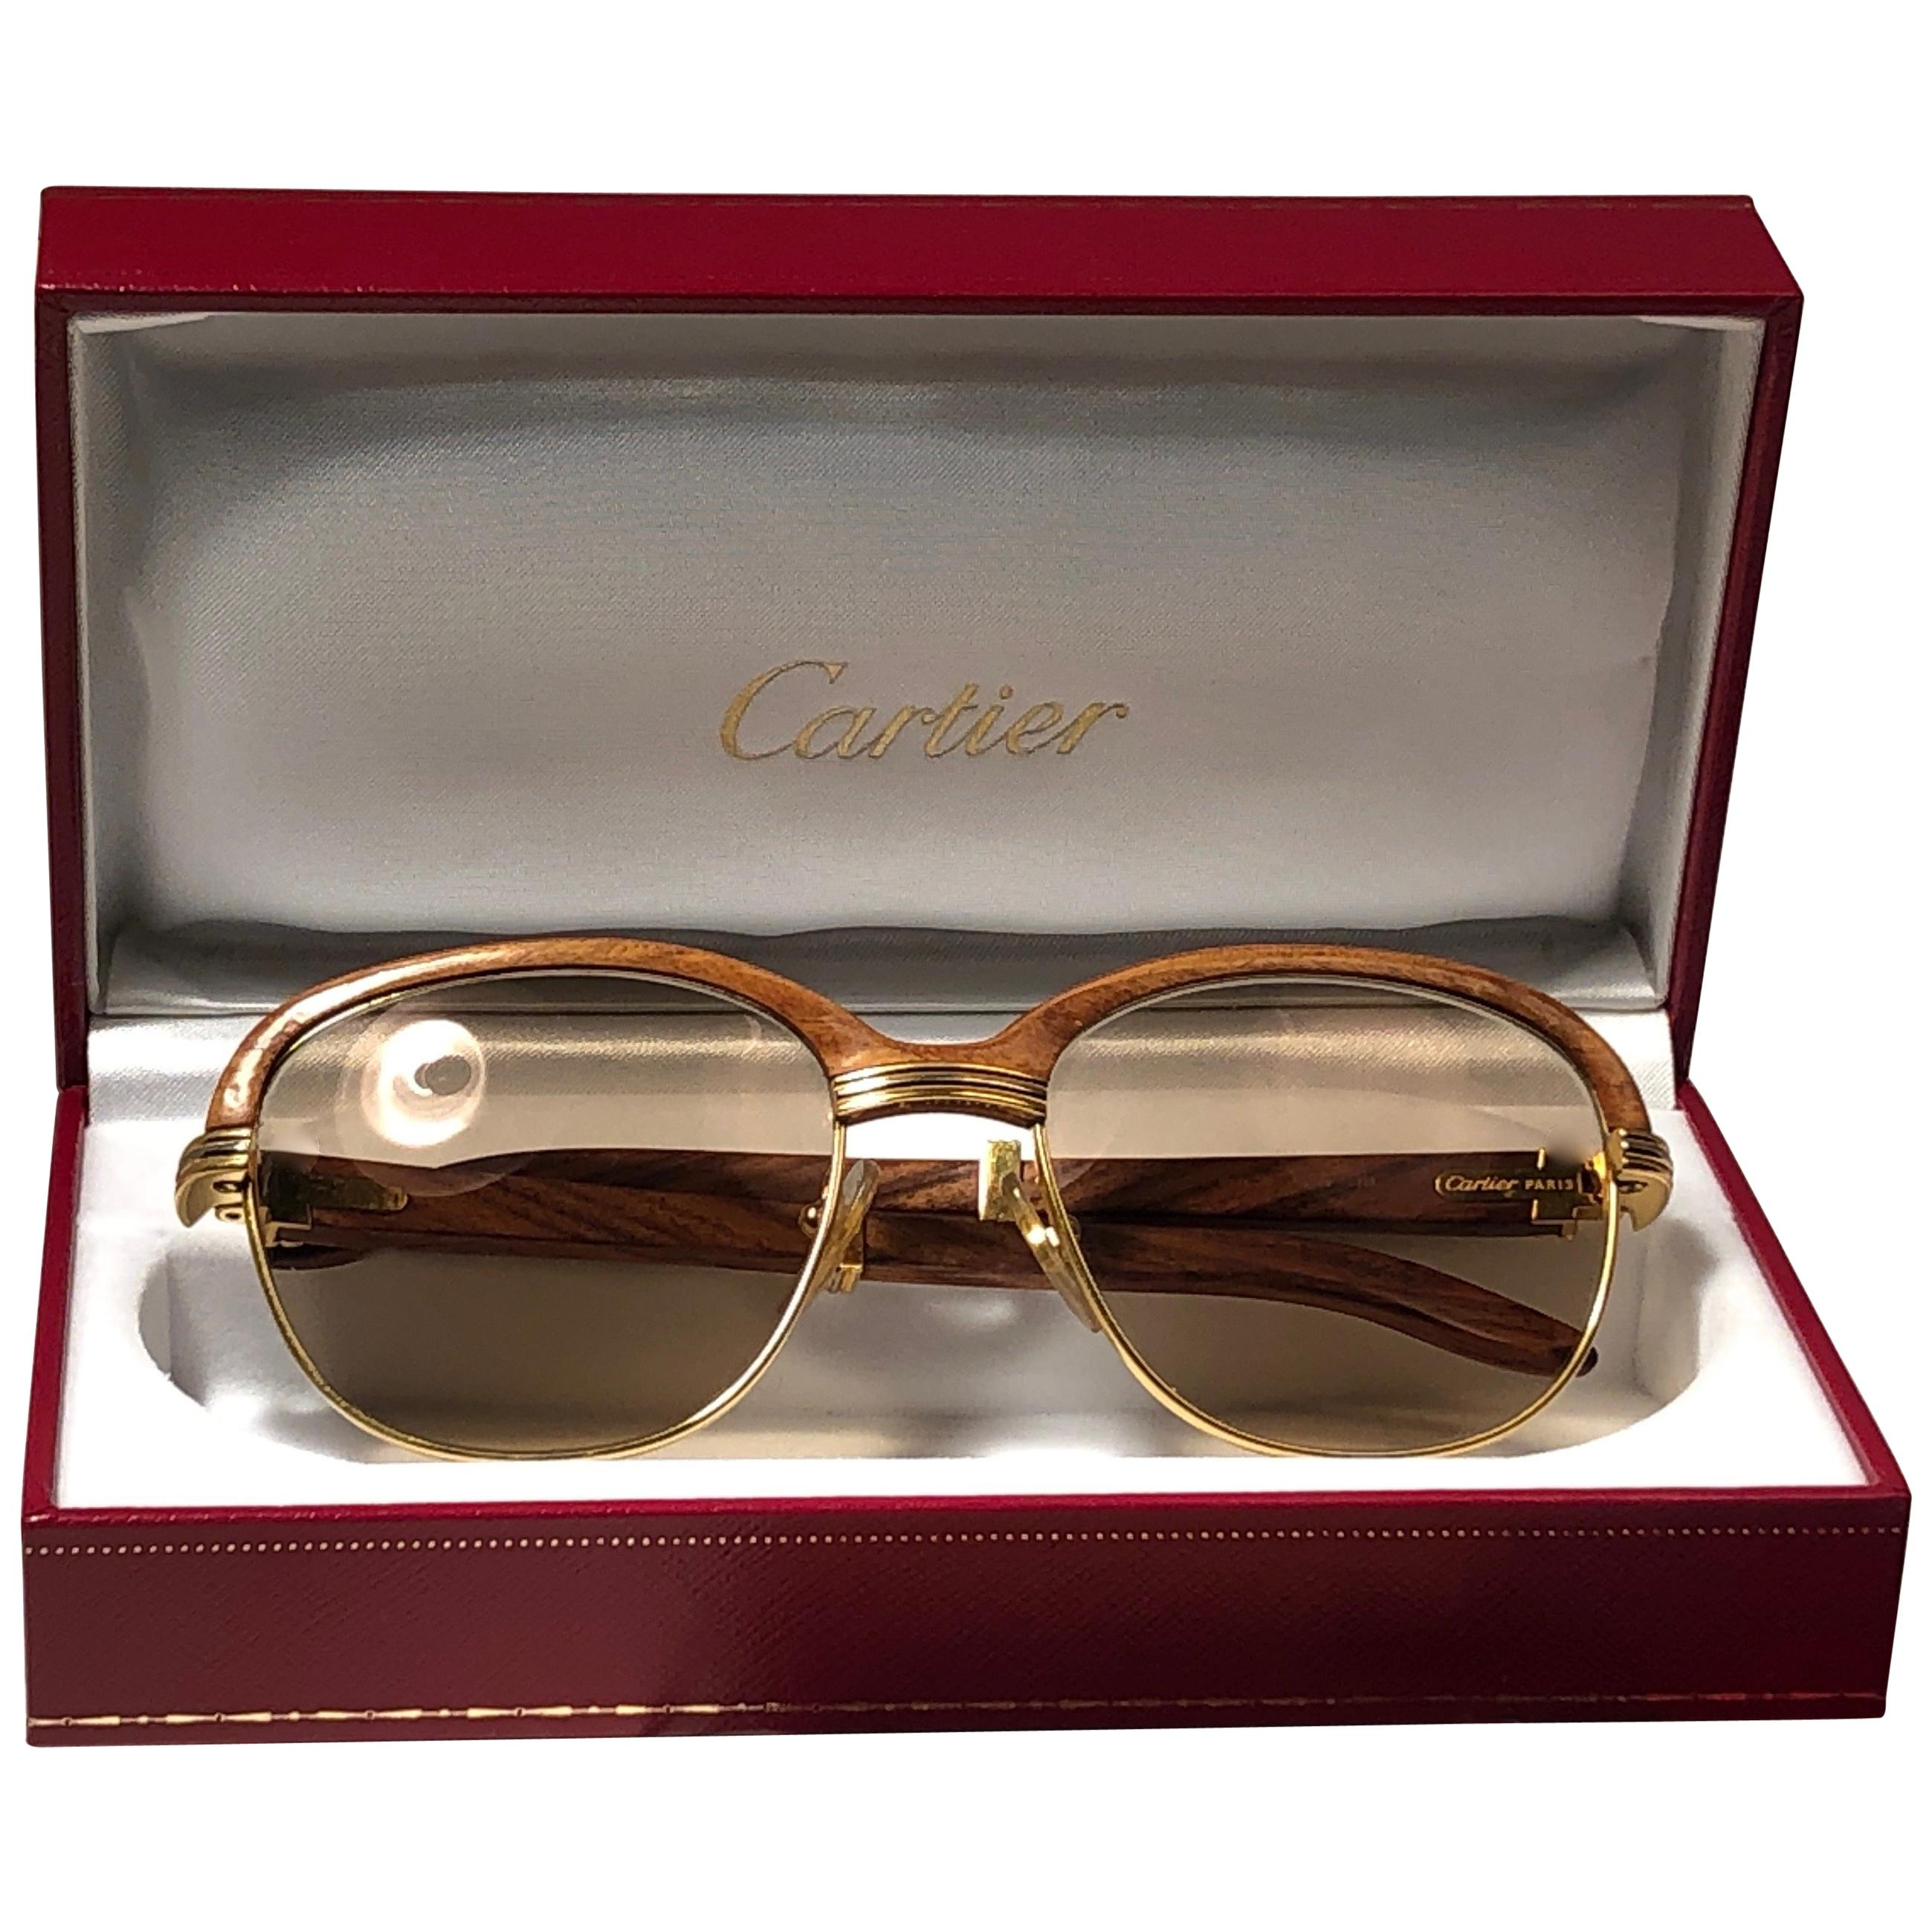 9a6c9c61db Vintage Cartier Sunglasses - 160 For Sale at 1stdibs